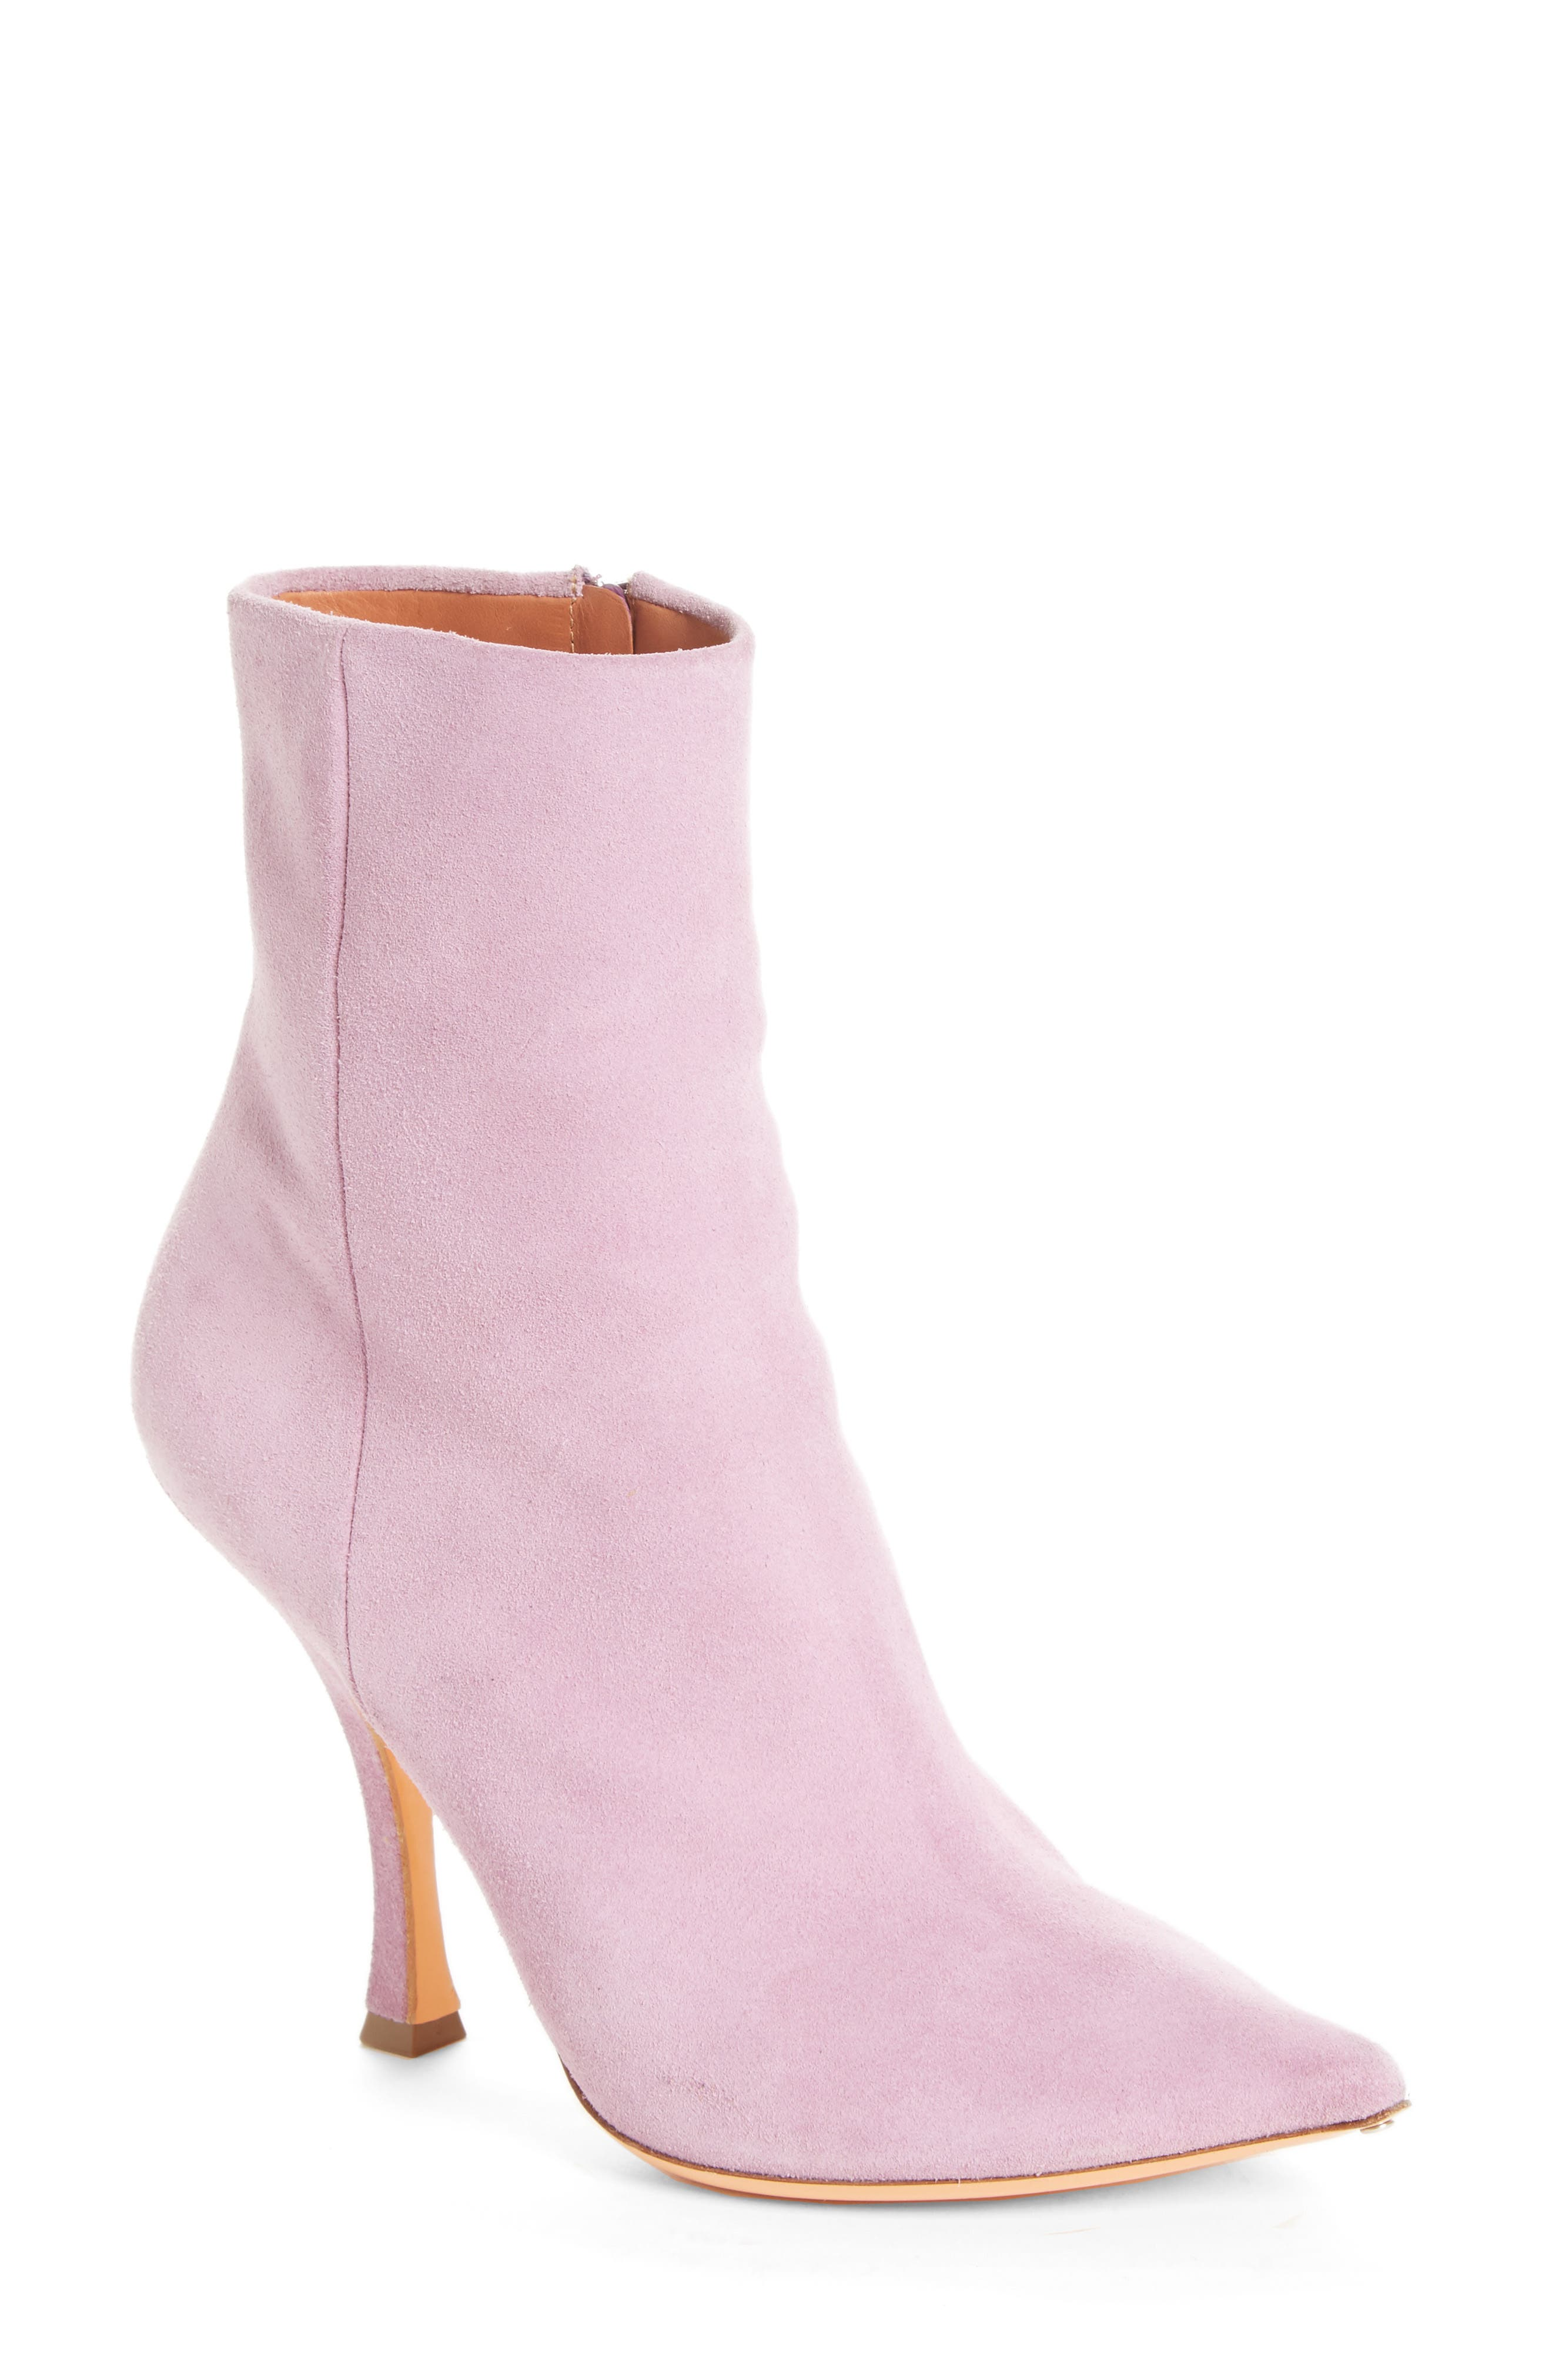 Main Image - Y/Project Suede Ankle Boot (Women)